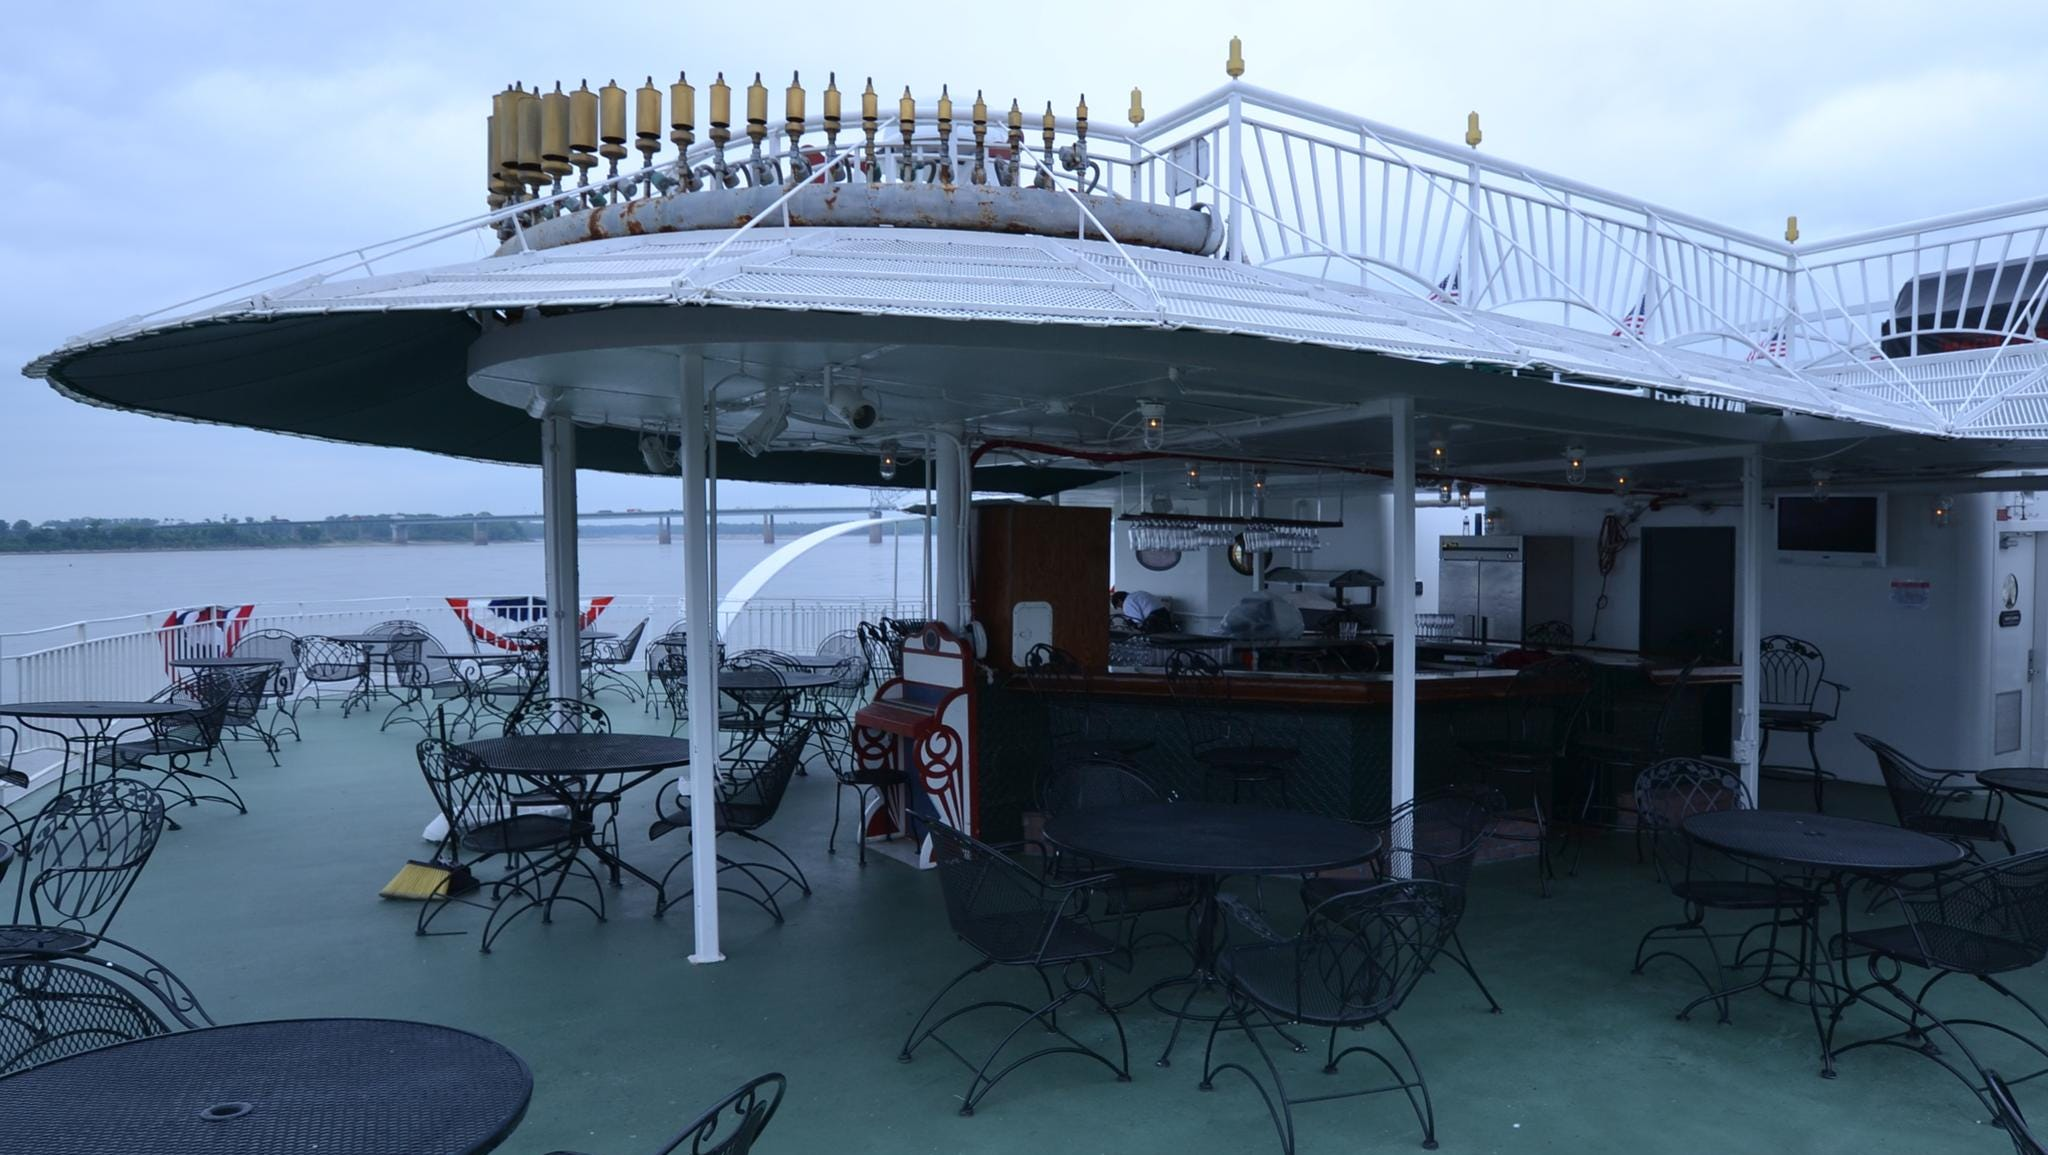 Located on one of the top decks at the back of the American Queen is the River Grill, an outdoor bar and food area.